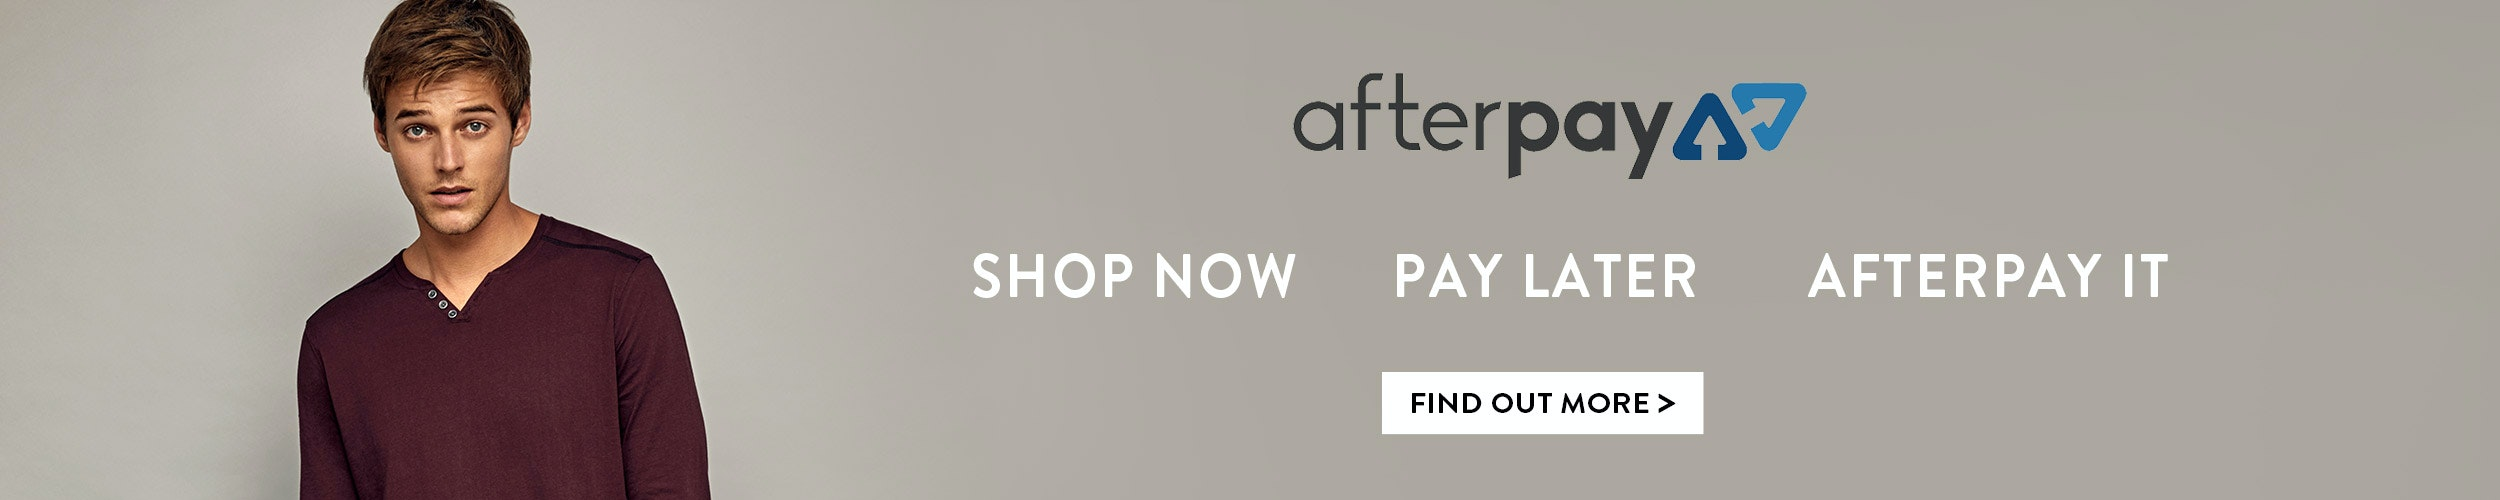 Find out about Afterpay at Tarocash - shop now, pay later